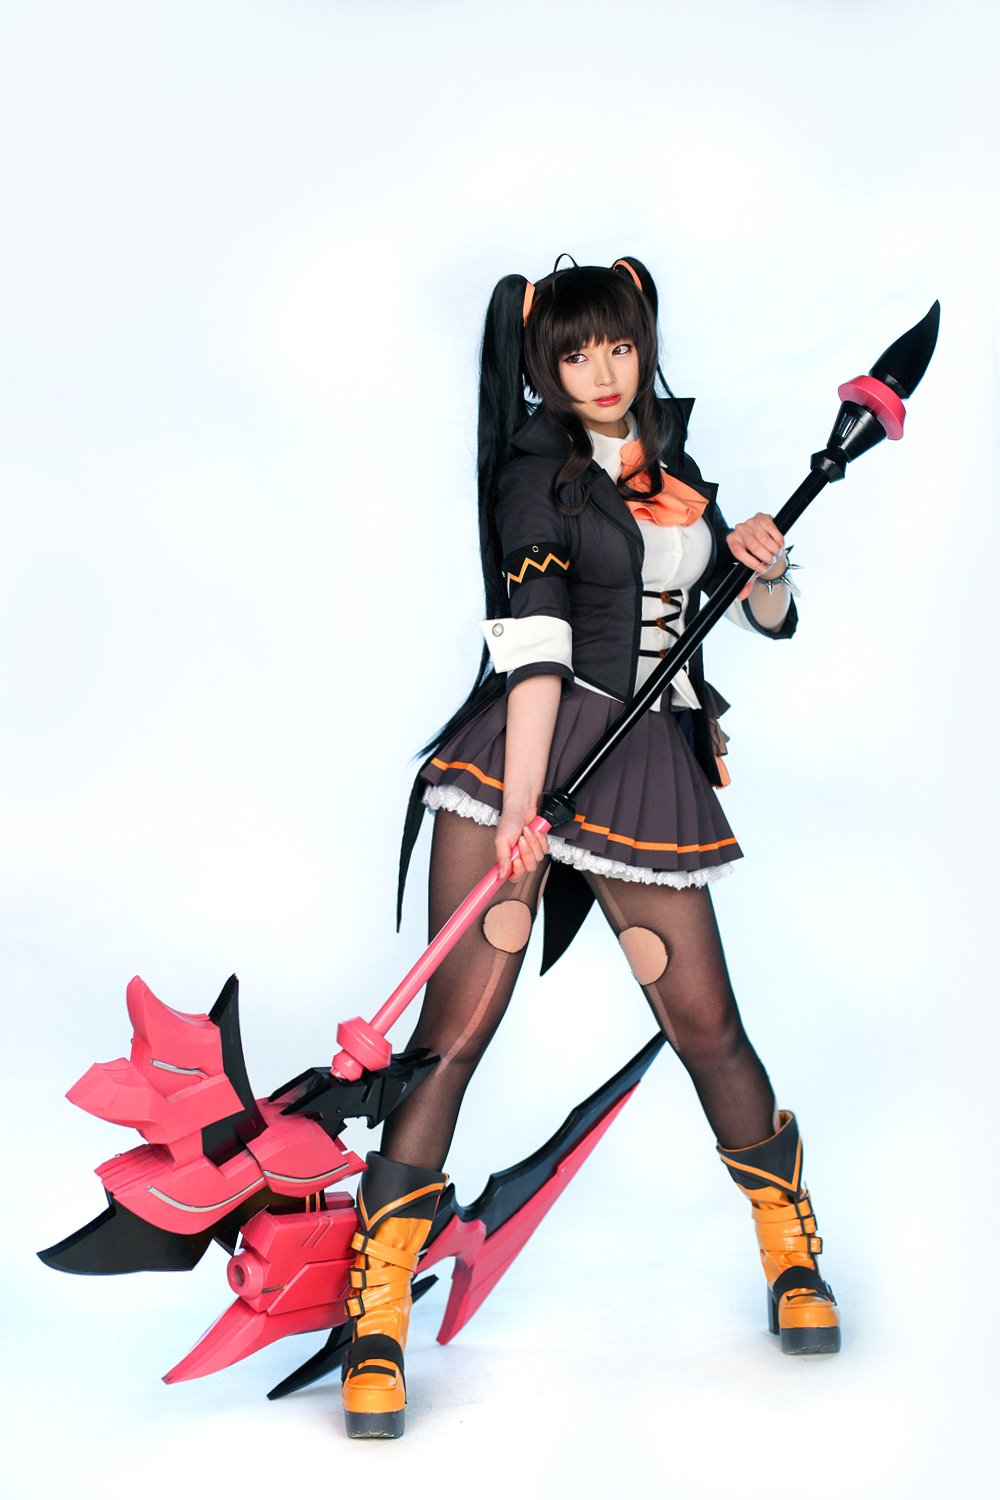 SoulWorker Myst Scythe Lily Bloommerchen cosplay 7